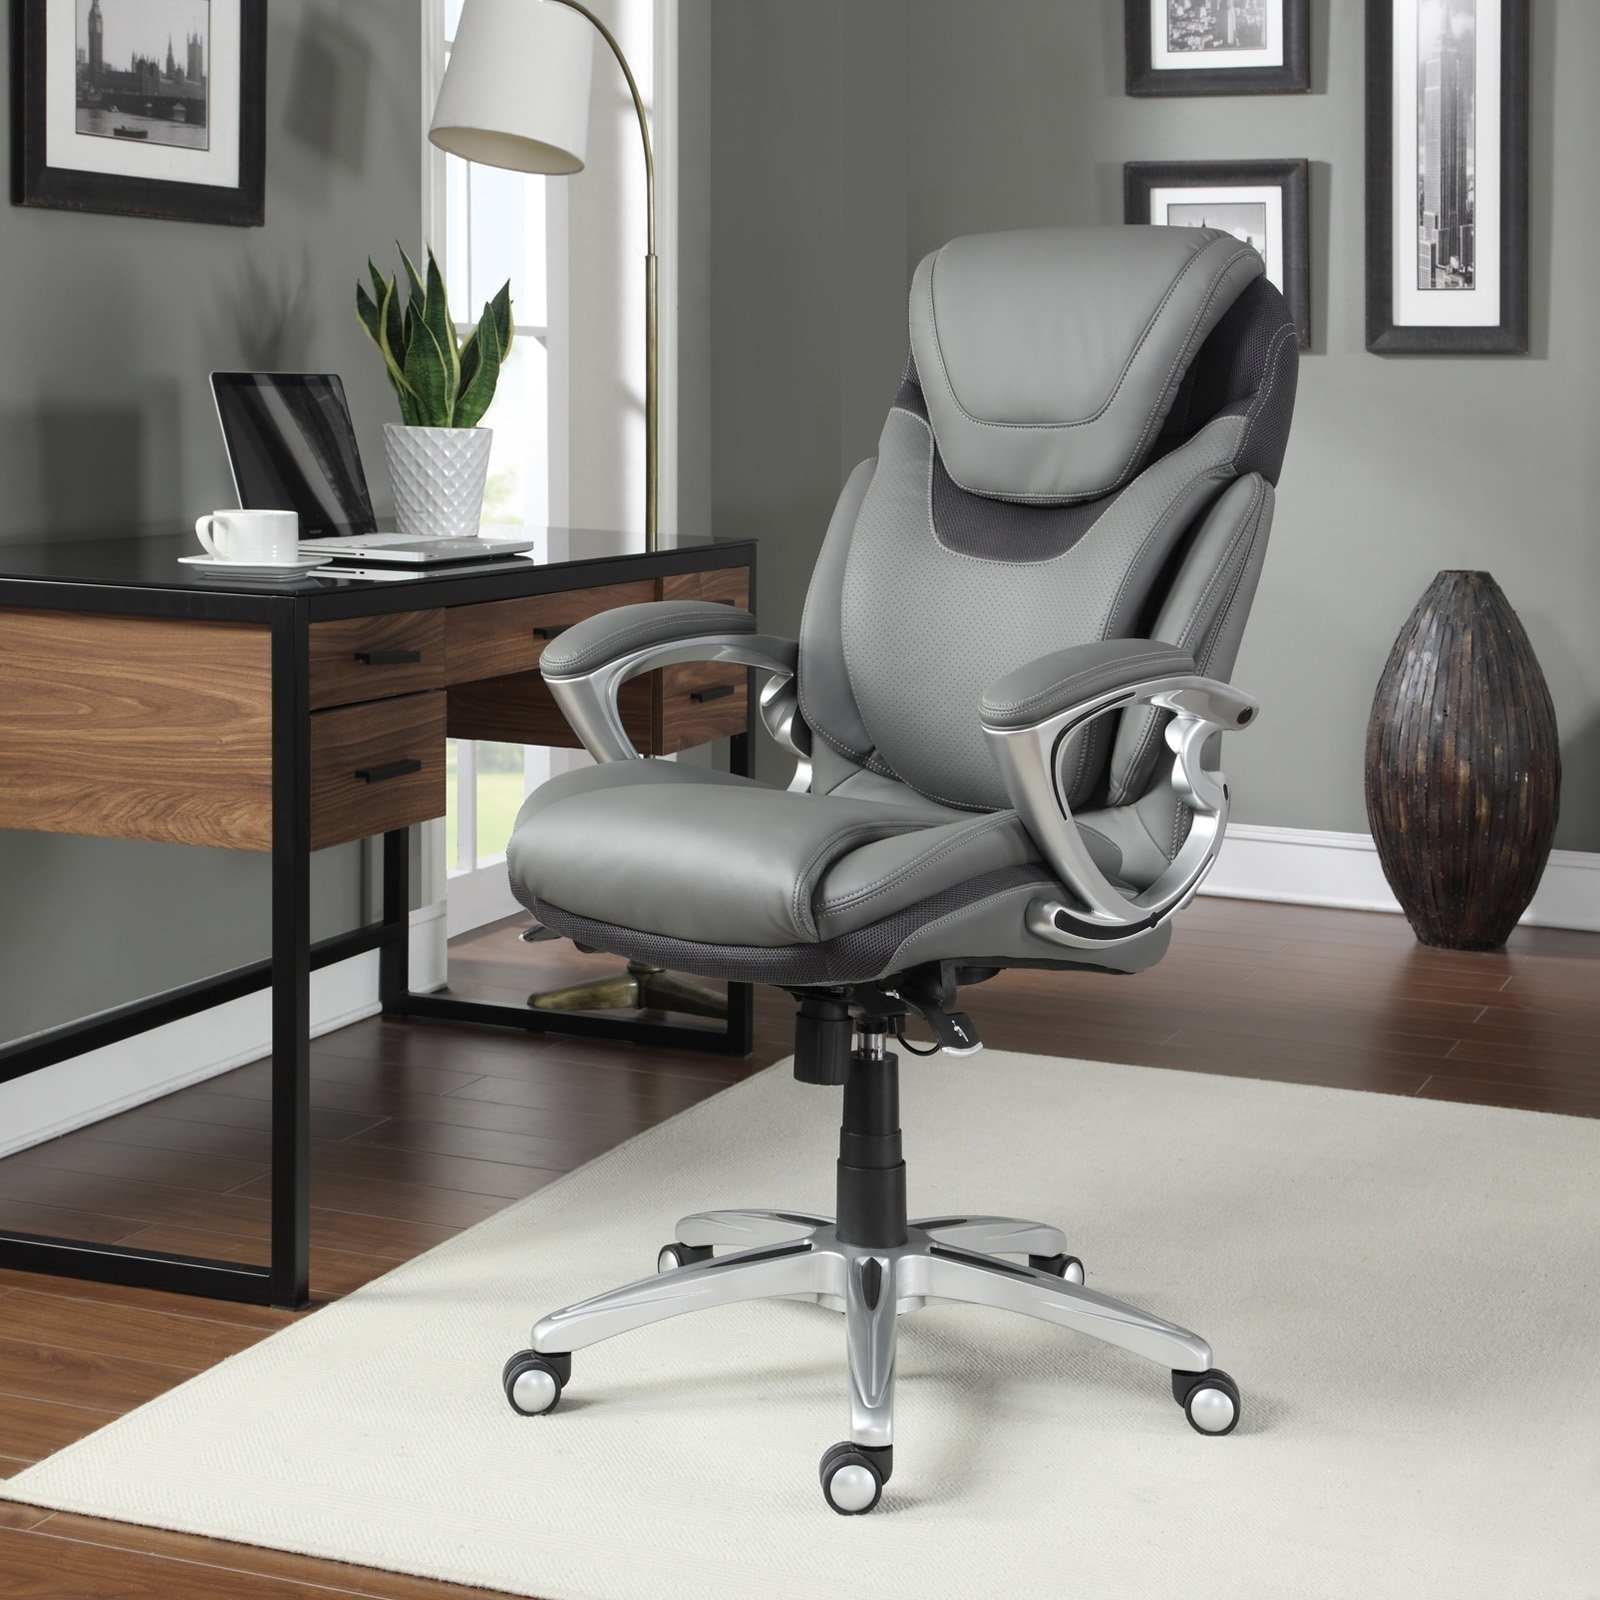 Leather Executive Office Chairs Regarding Famous Gray Leather Executive Office Chair • Office Chairs (View 10 of 20)